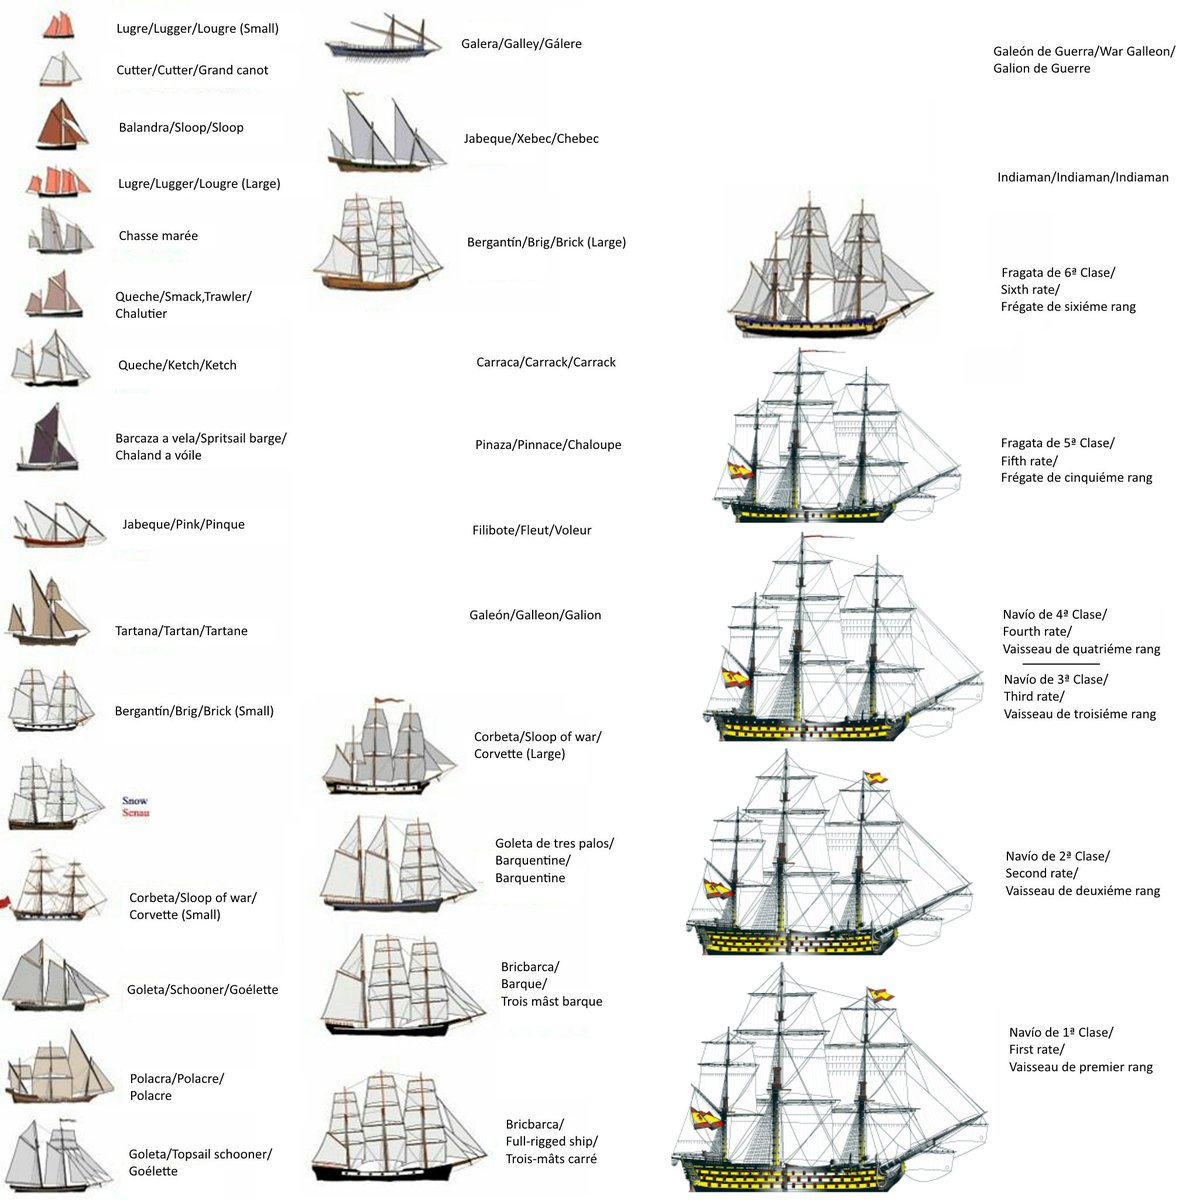 Seas of honor on twitter ships names traslated diagram we are seas of honor on twitter ships names traslated diagram we are working in a naval game yes pooptronica Choice Image